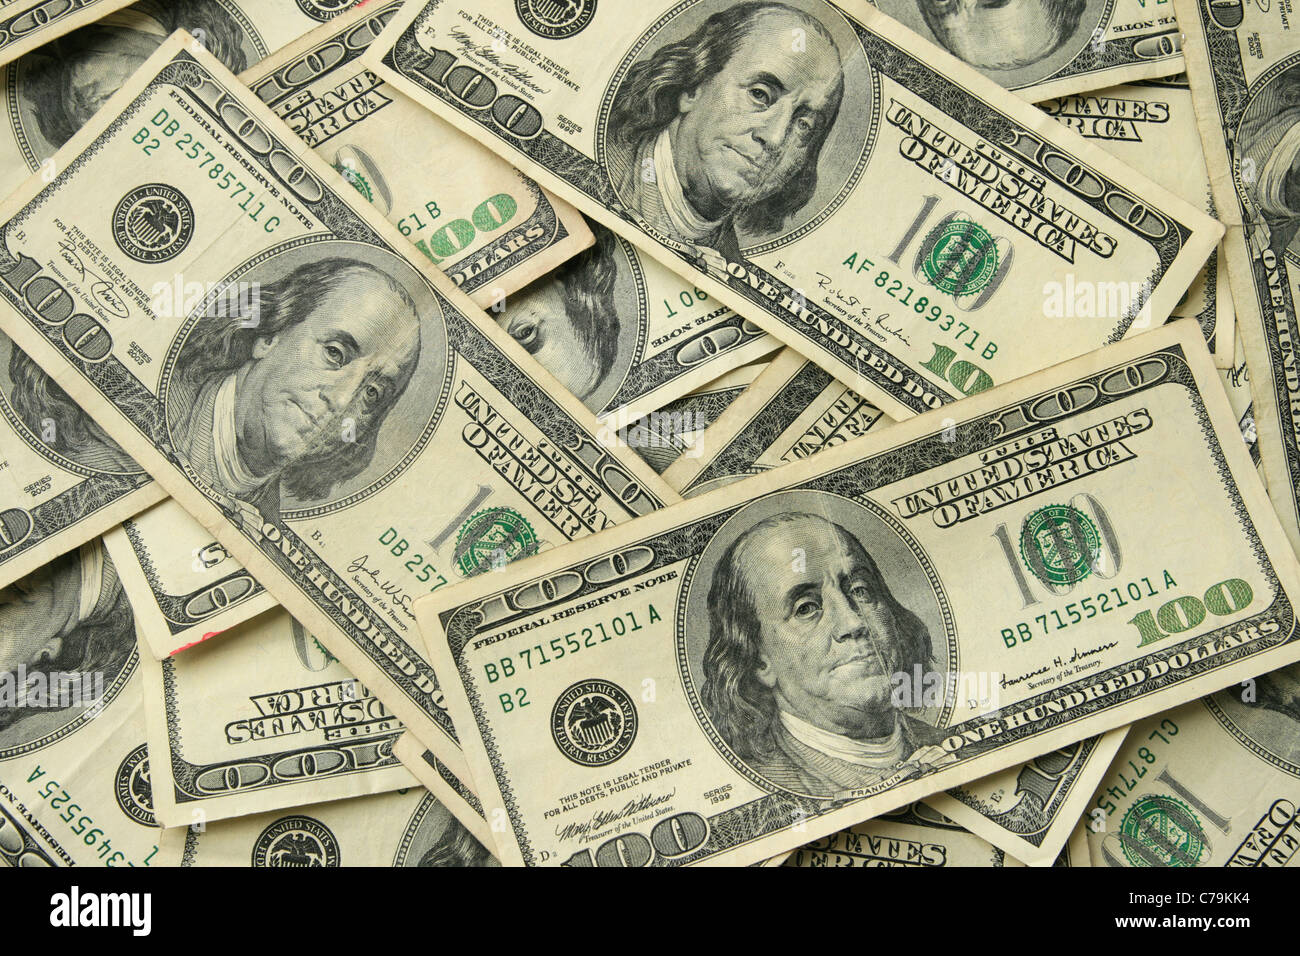 background of one hundred dollar United States bills - Stock Image